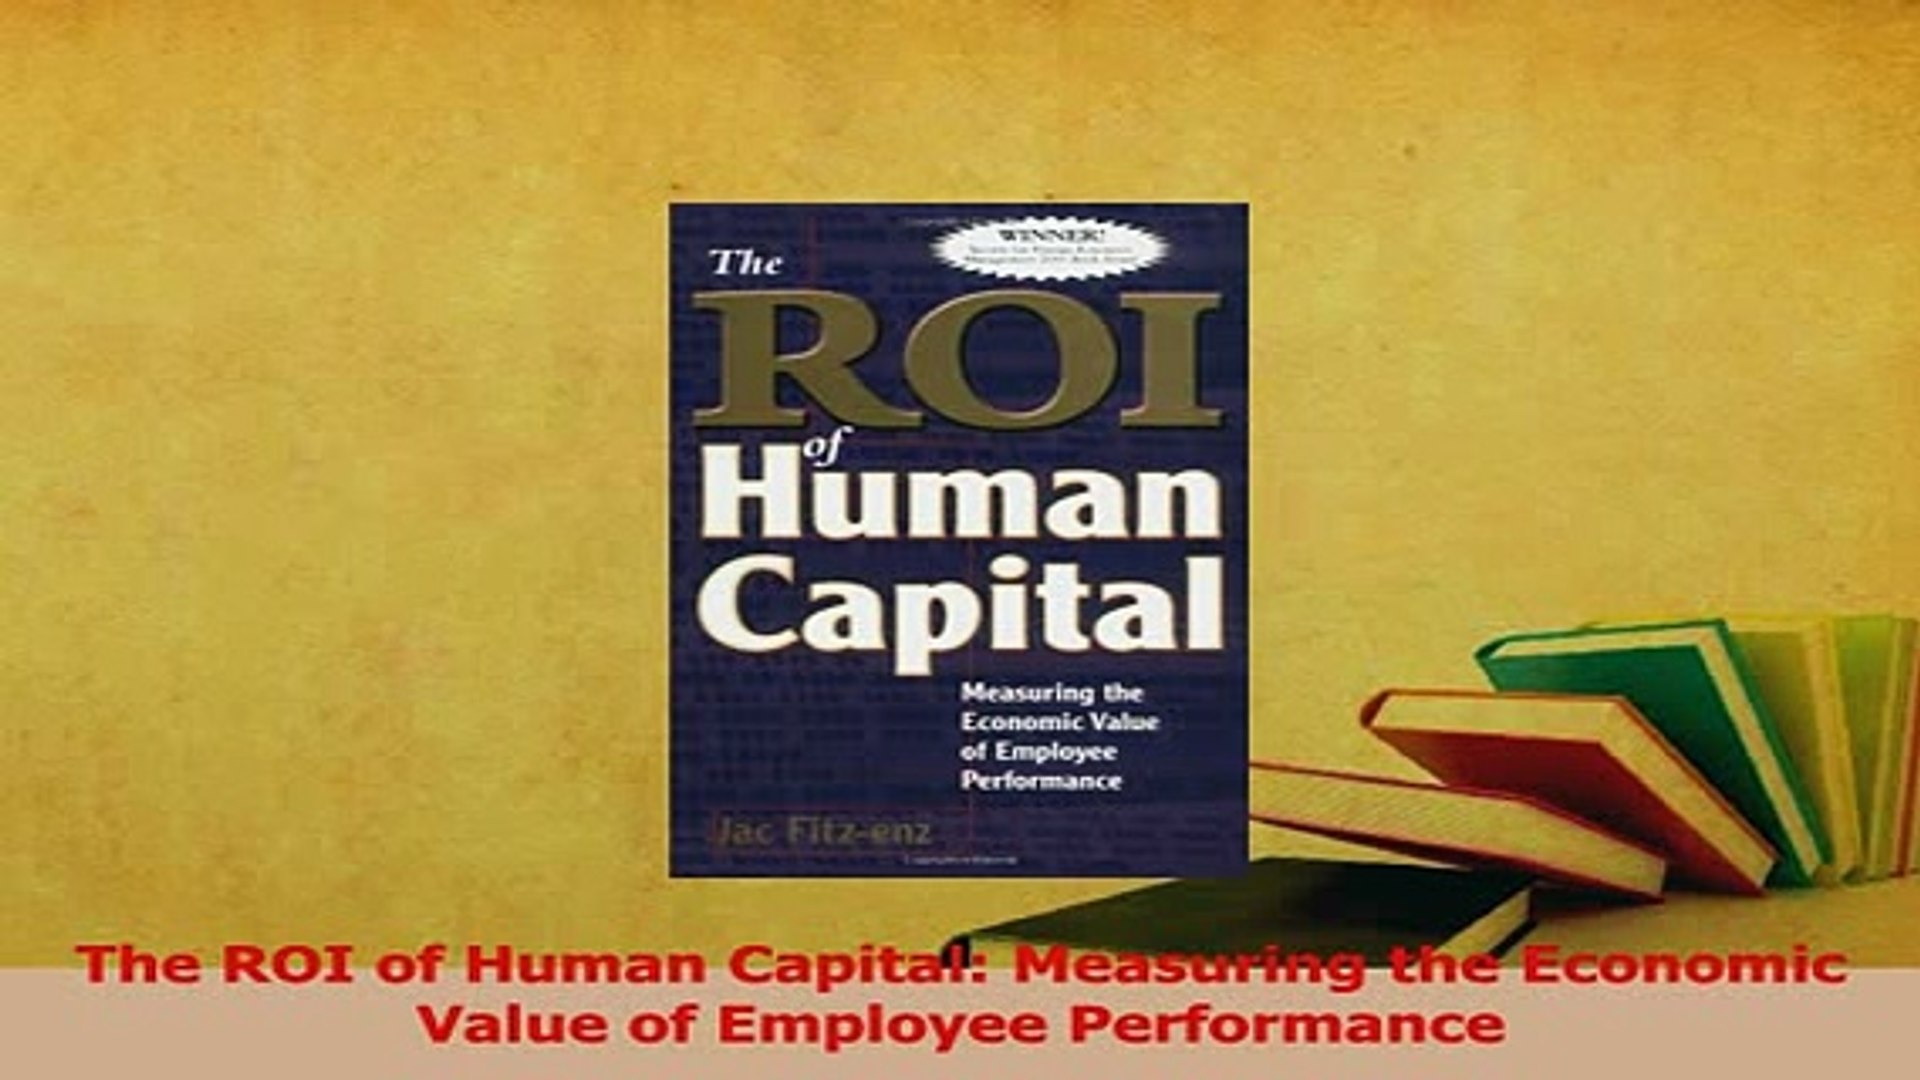 The ROI of Human Capital: Measuring the Economic Value of Employee Performance